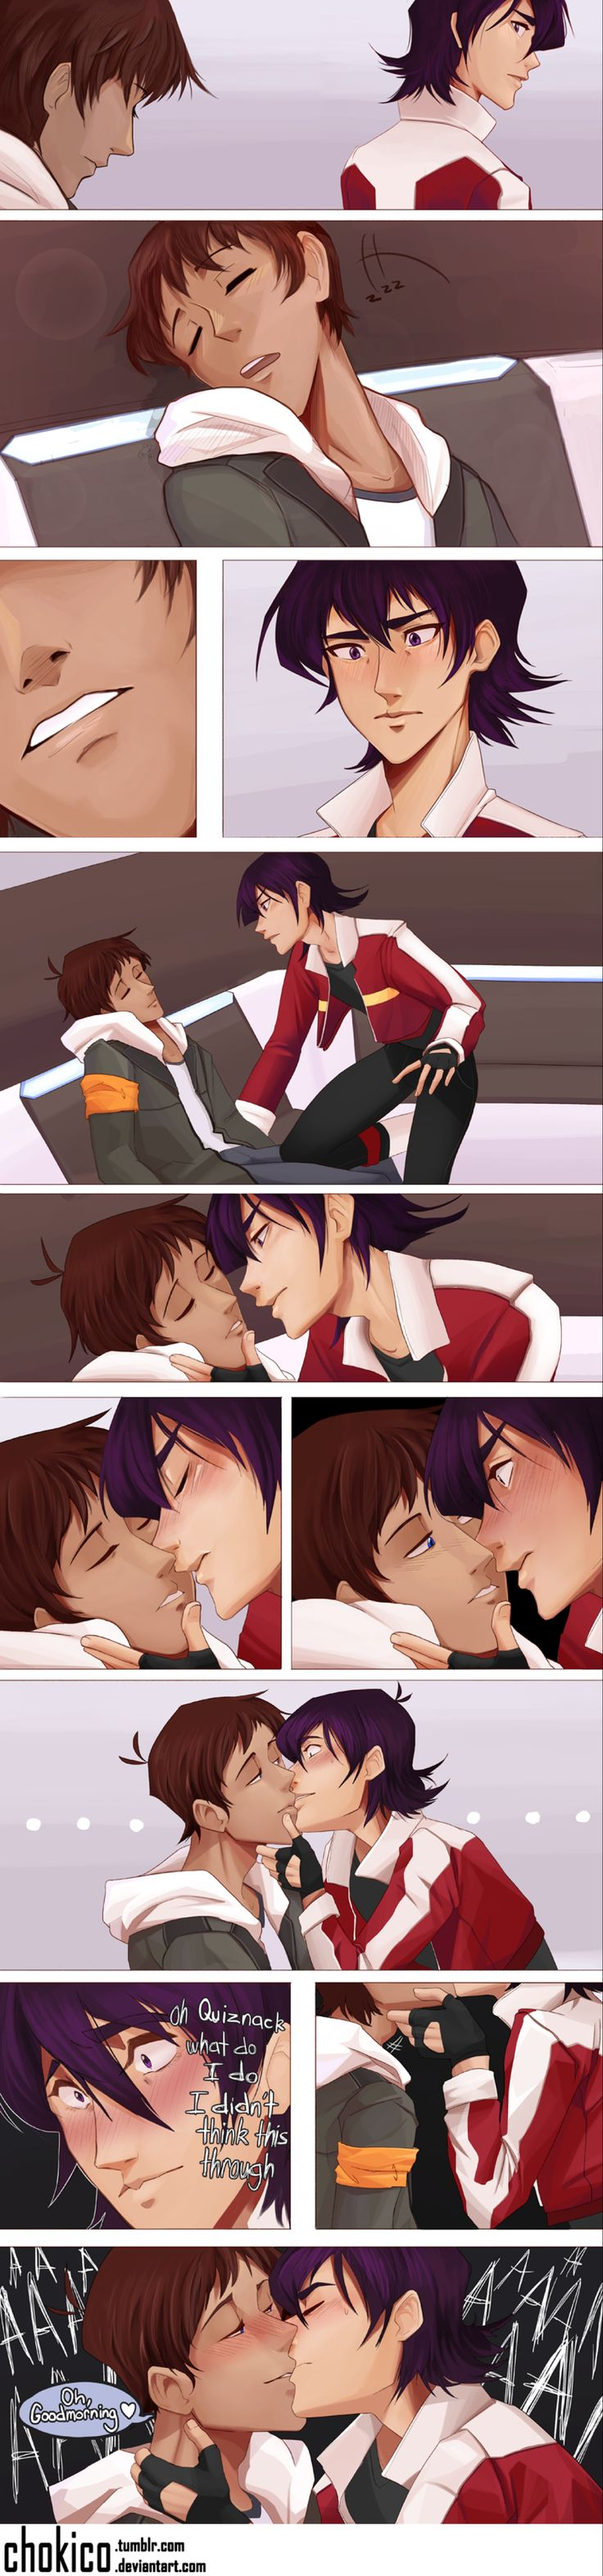 Klance by Chokico on @DeviantArt